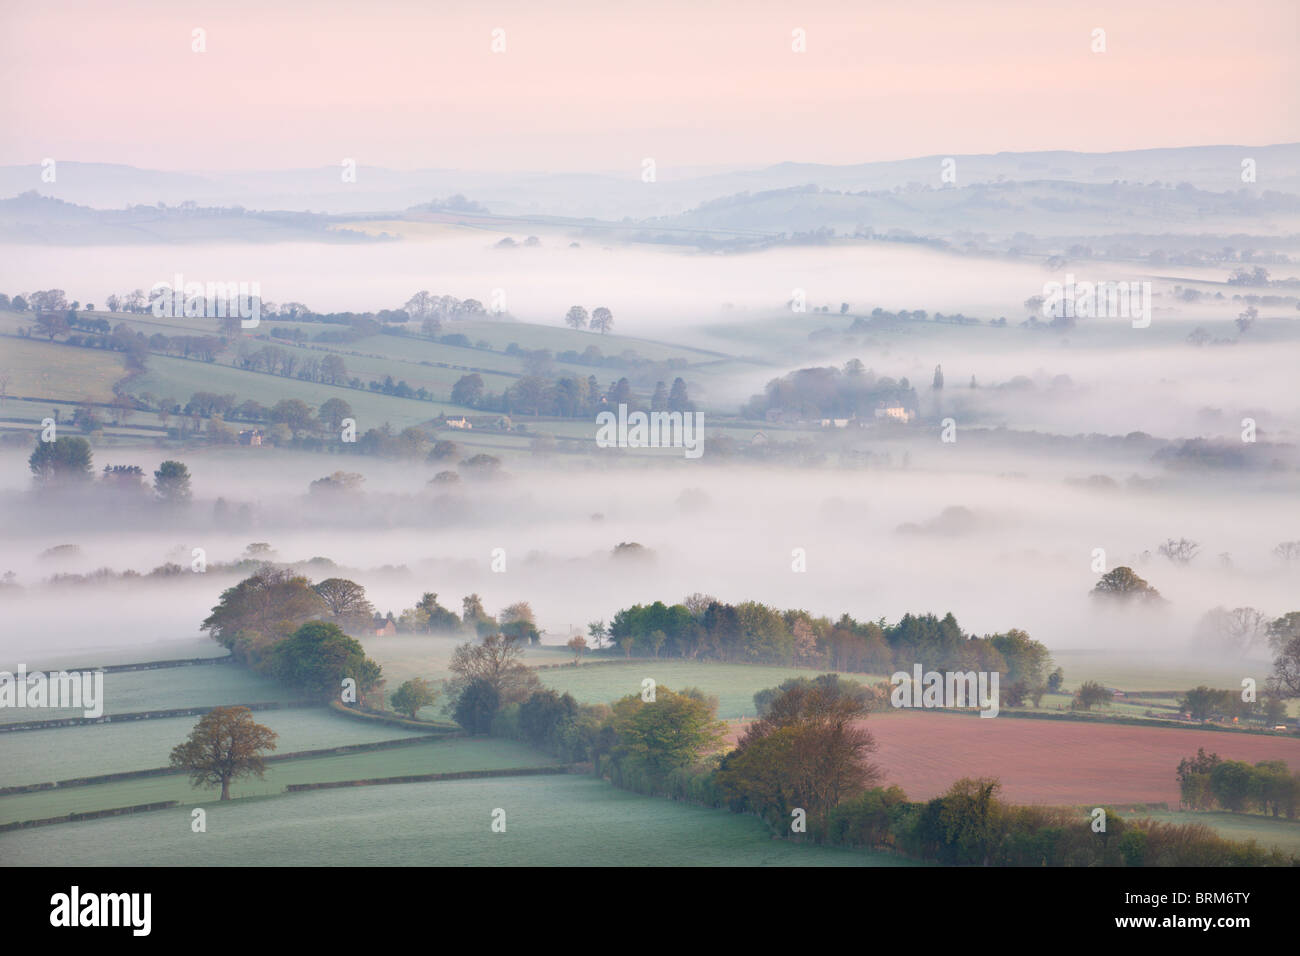 Mist covered countryside at dawn near Pennorth, Brecon Beacons National Park, Powys, Wales. Spring (May) 2010. - Stock Image